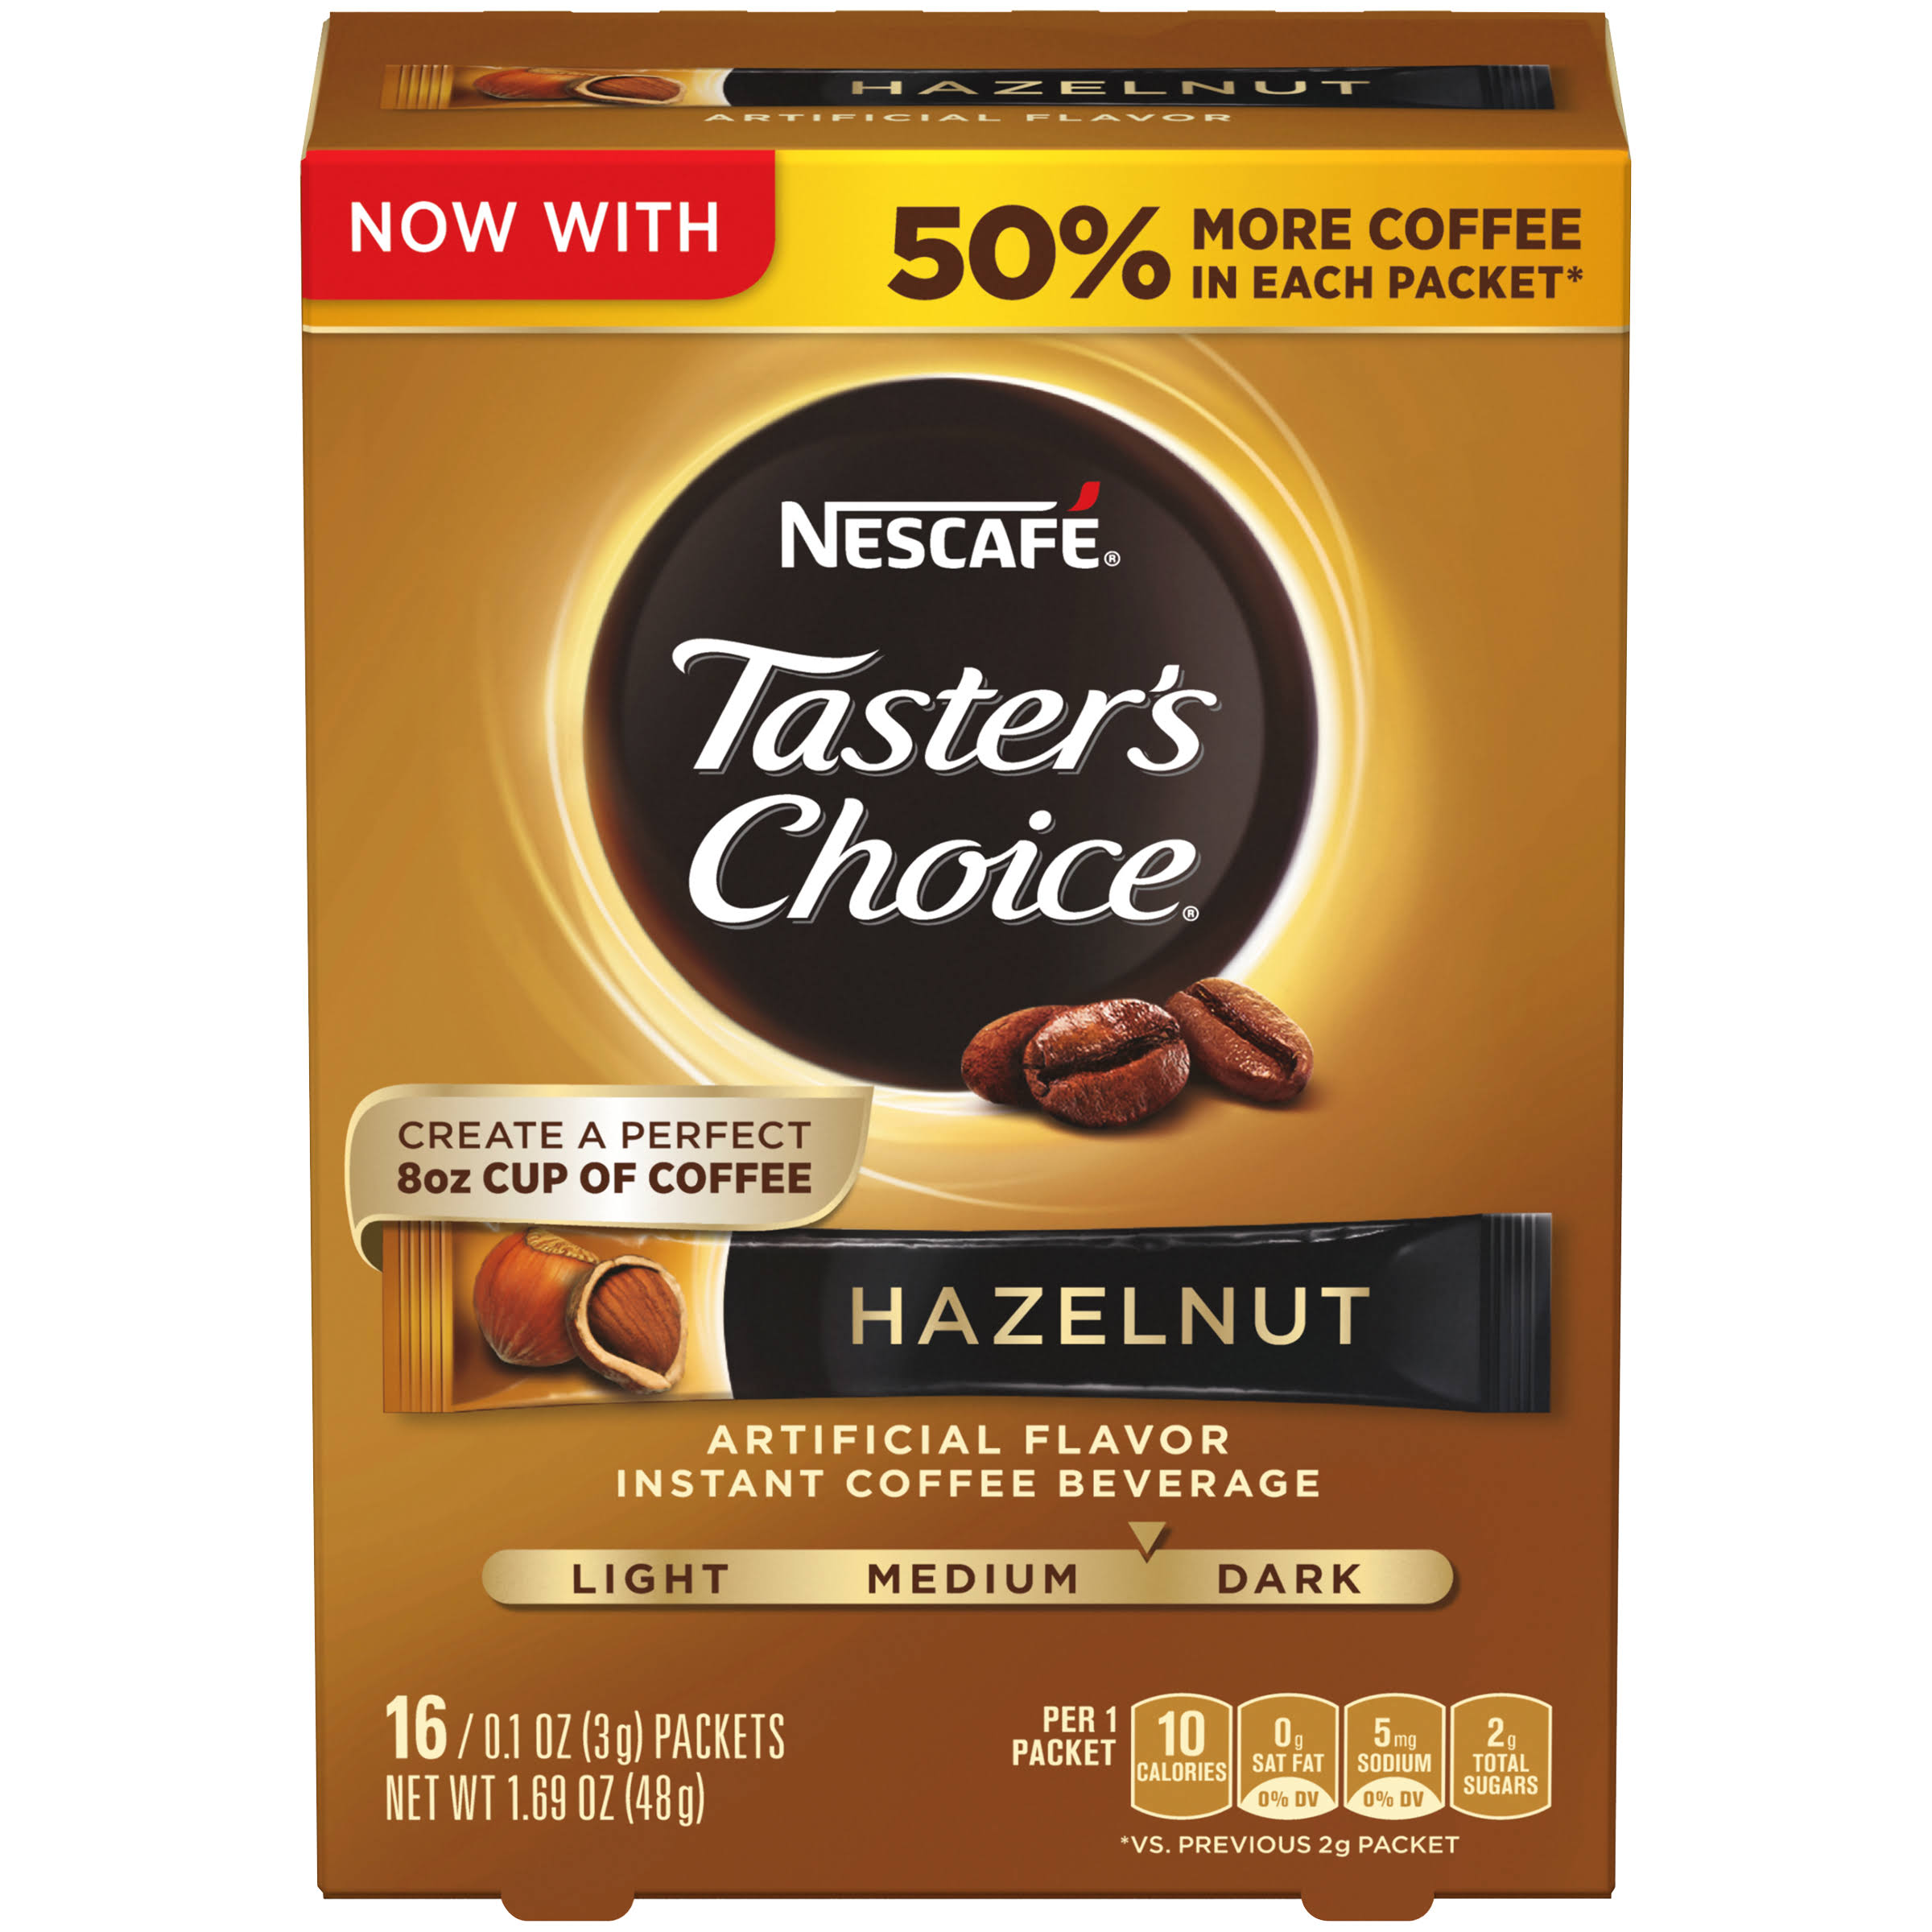 Nestle Taster's Choice Instant Coffee - Hazelnut, 1.69lb, Pack of 16